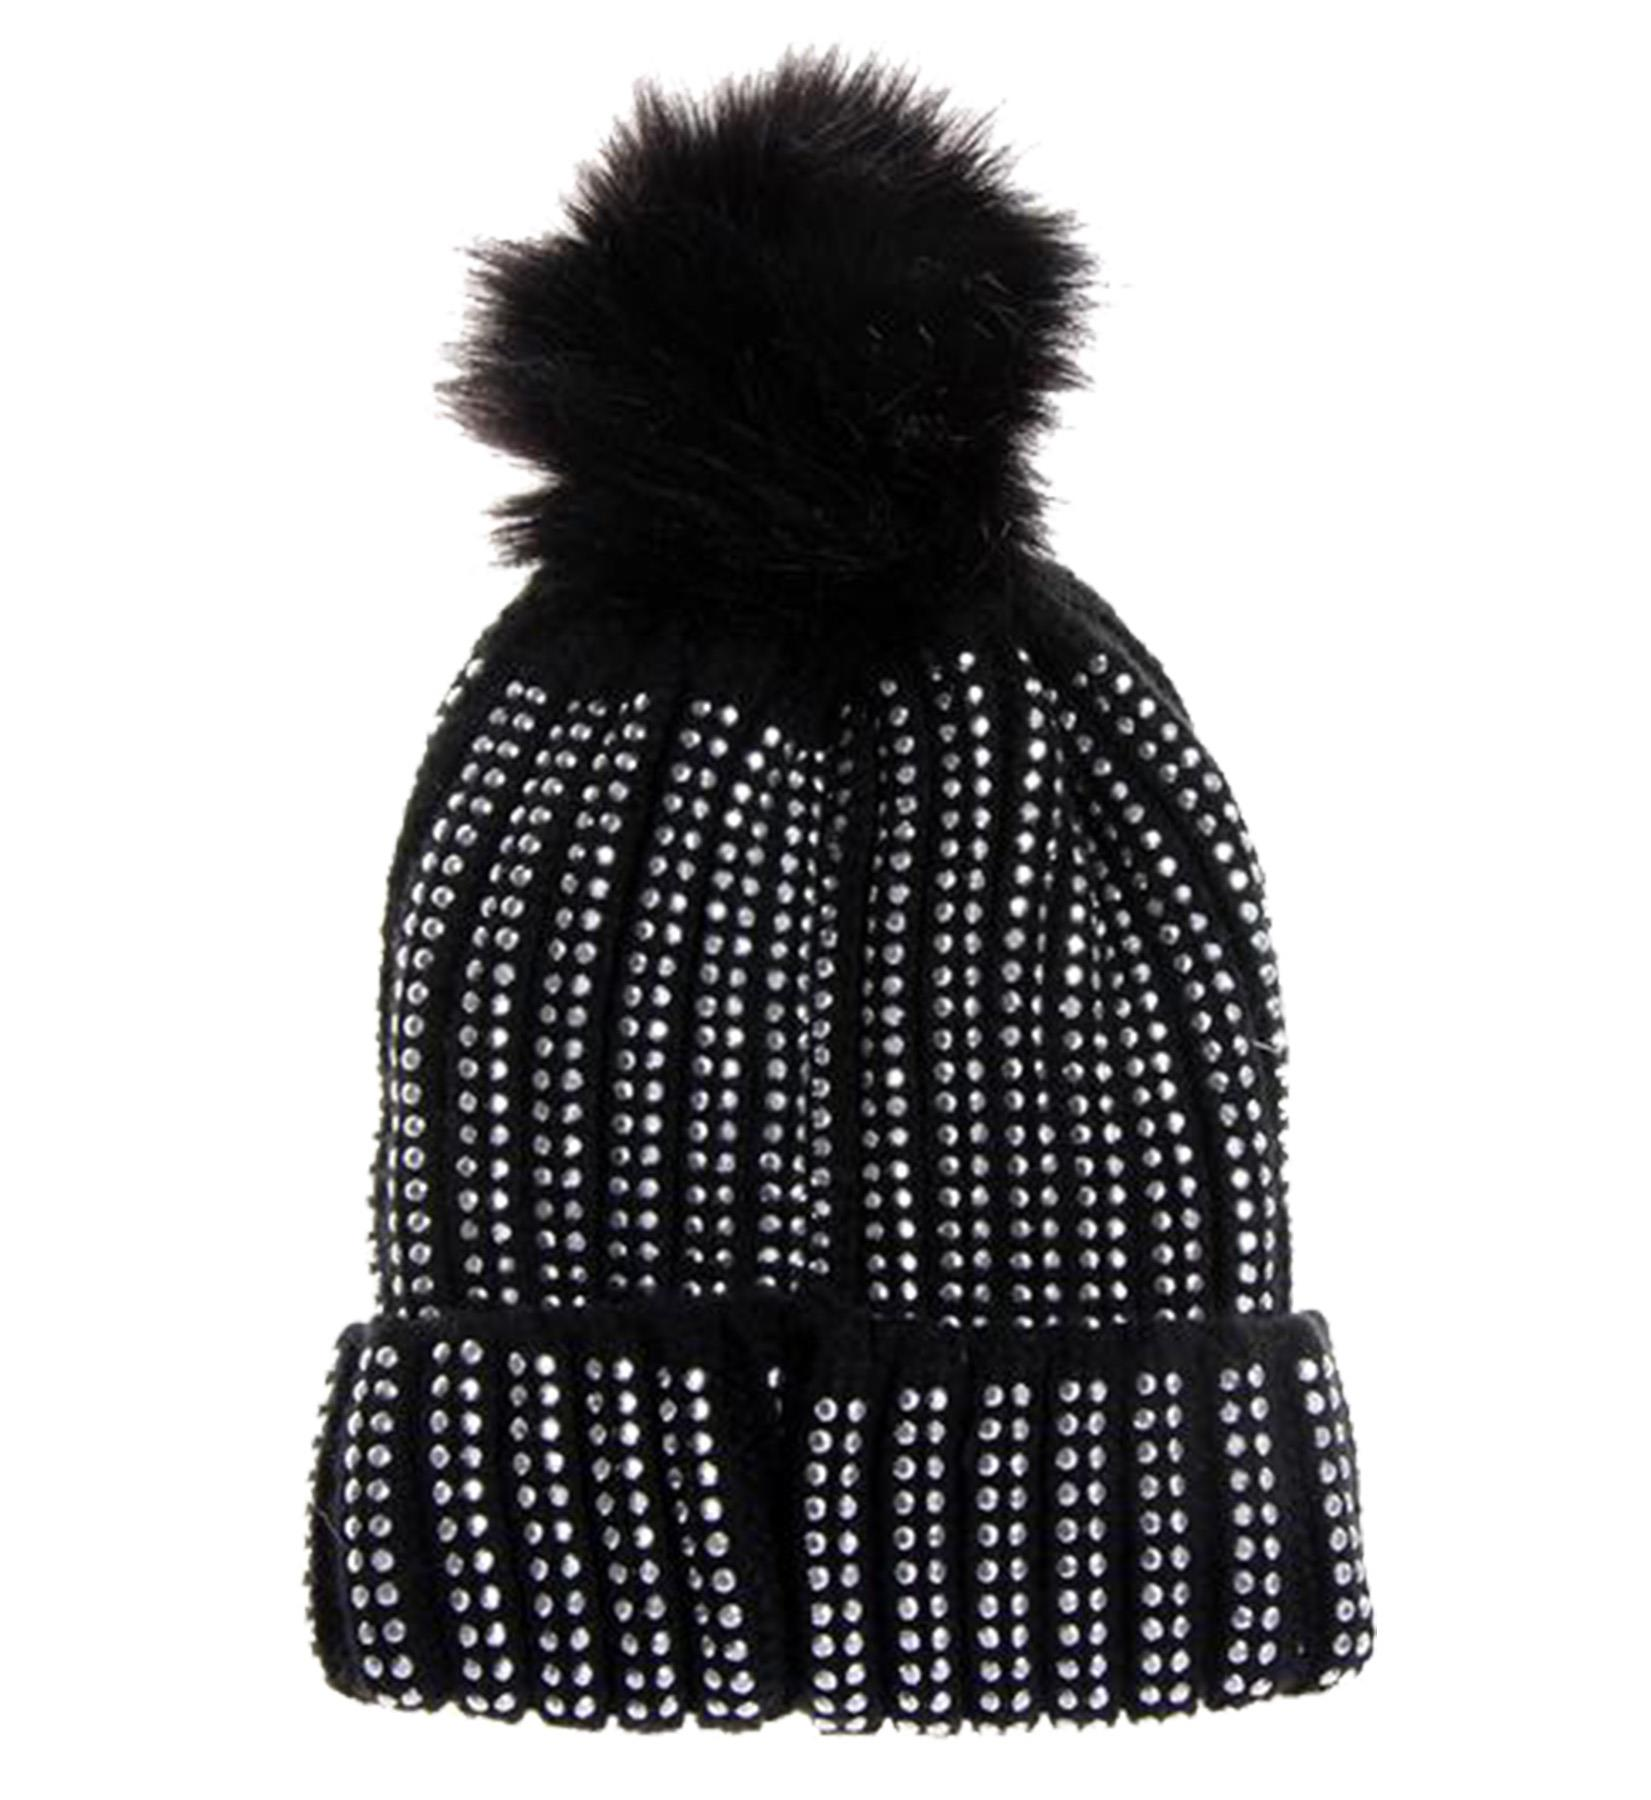 New-Rhinestone-Gem-Embellishment-Synthetic-Fur-Pom-Pom-Women-s-Beanie-Hat thumbnail 6